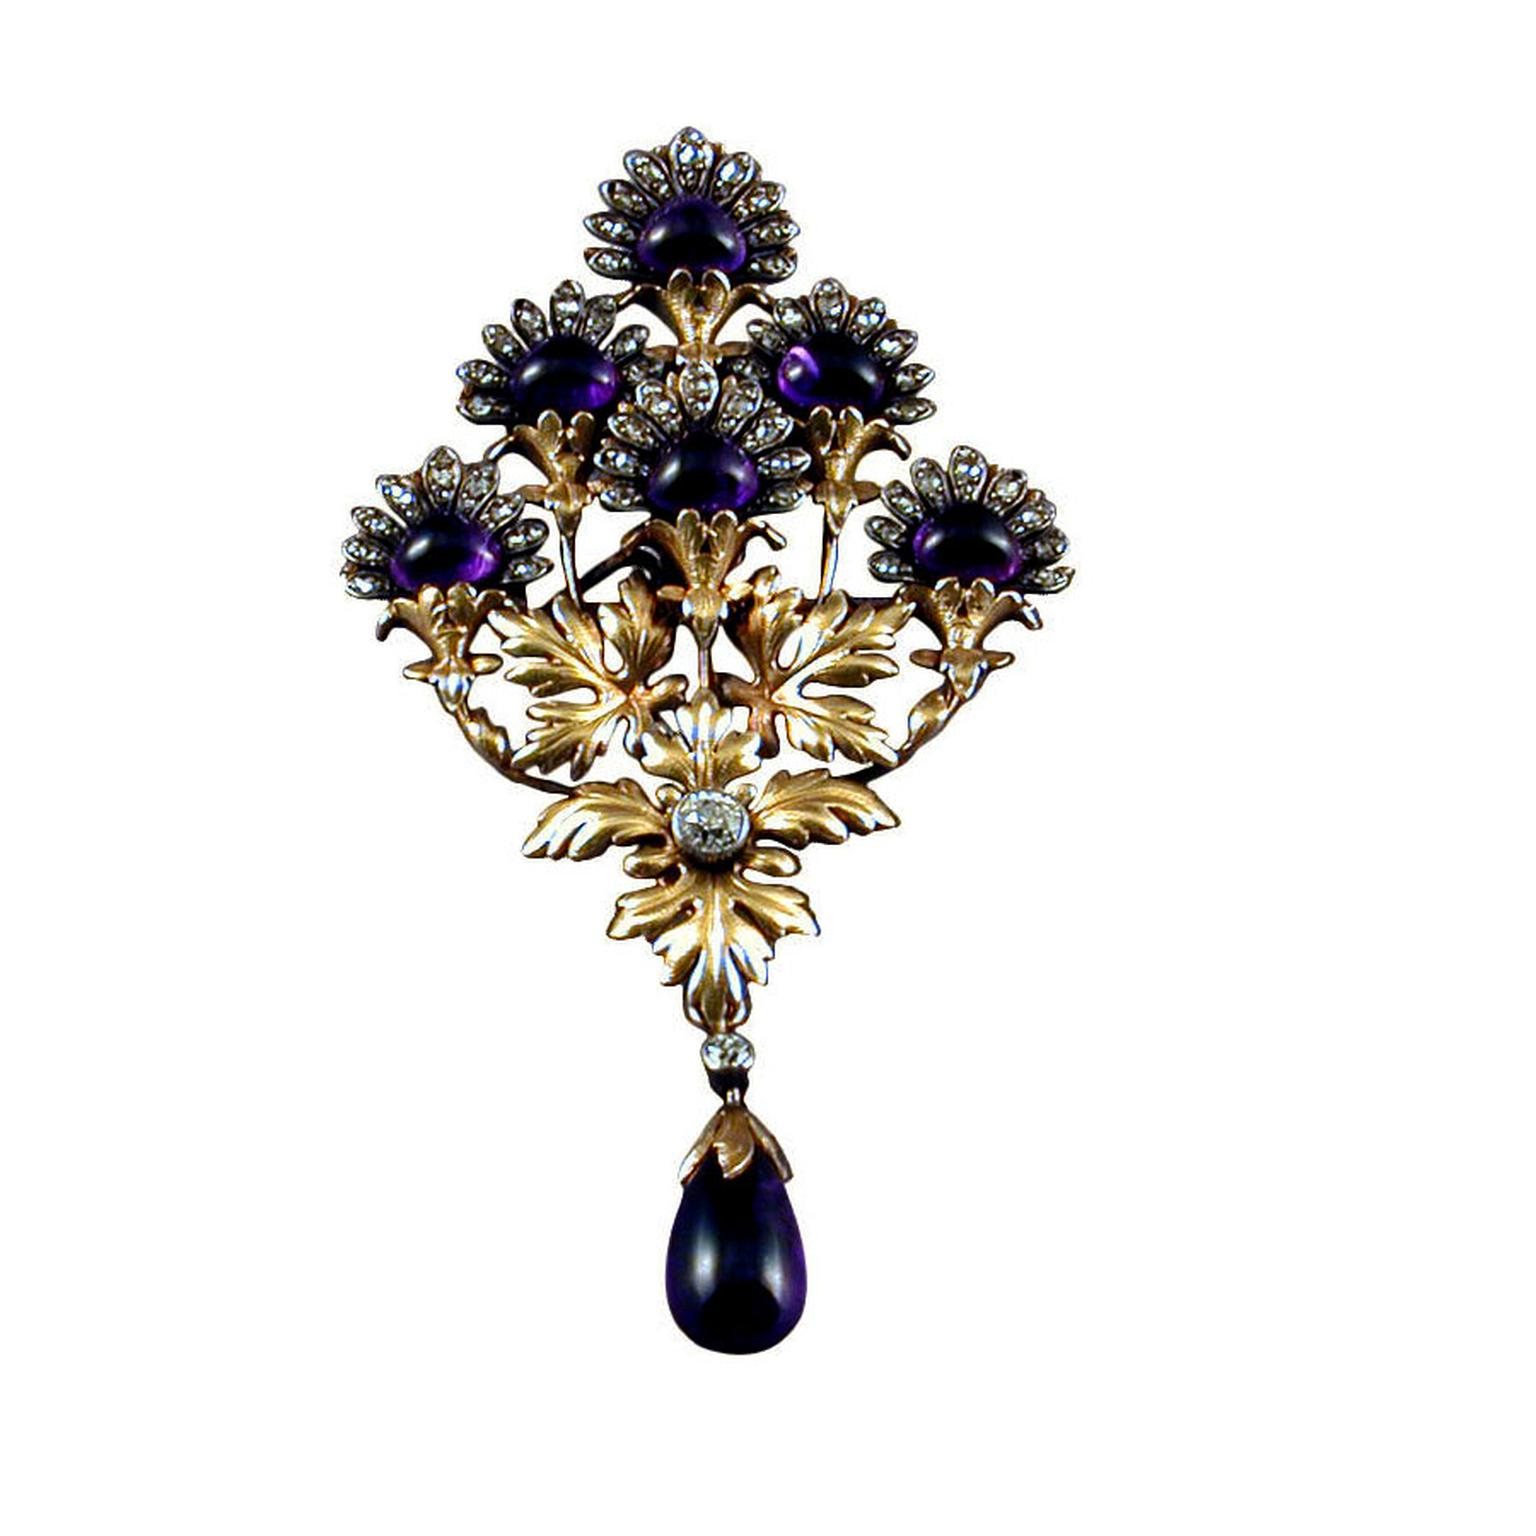 James Robinson gold, amethyst and diamond brooch